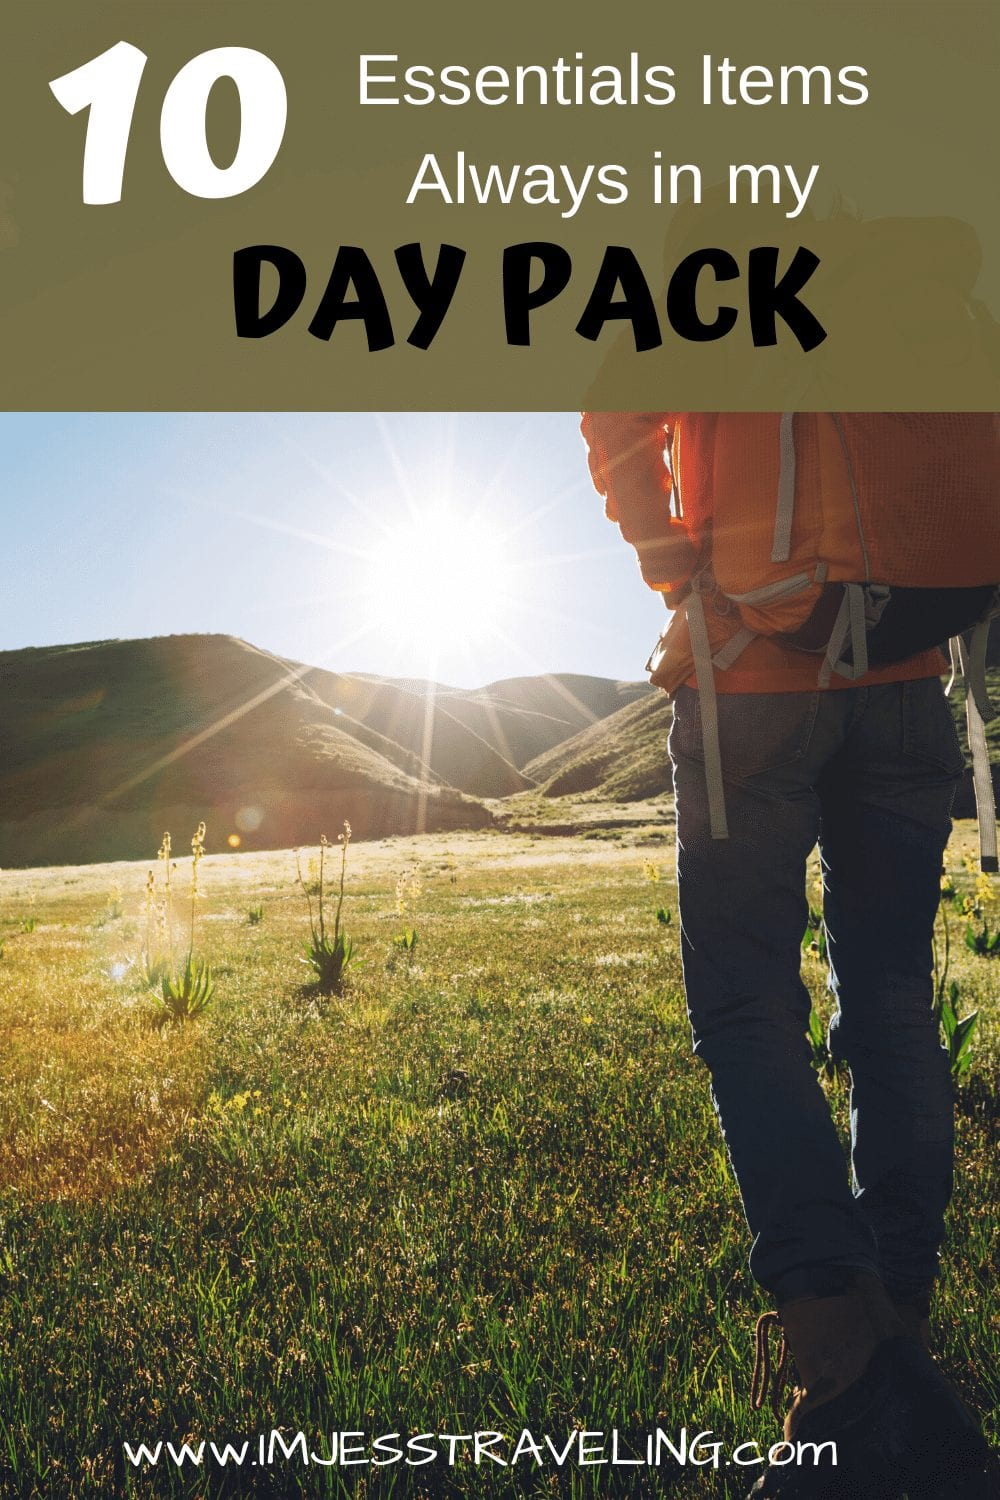 Day hike packing essentials